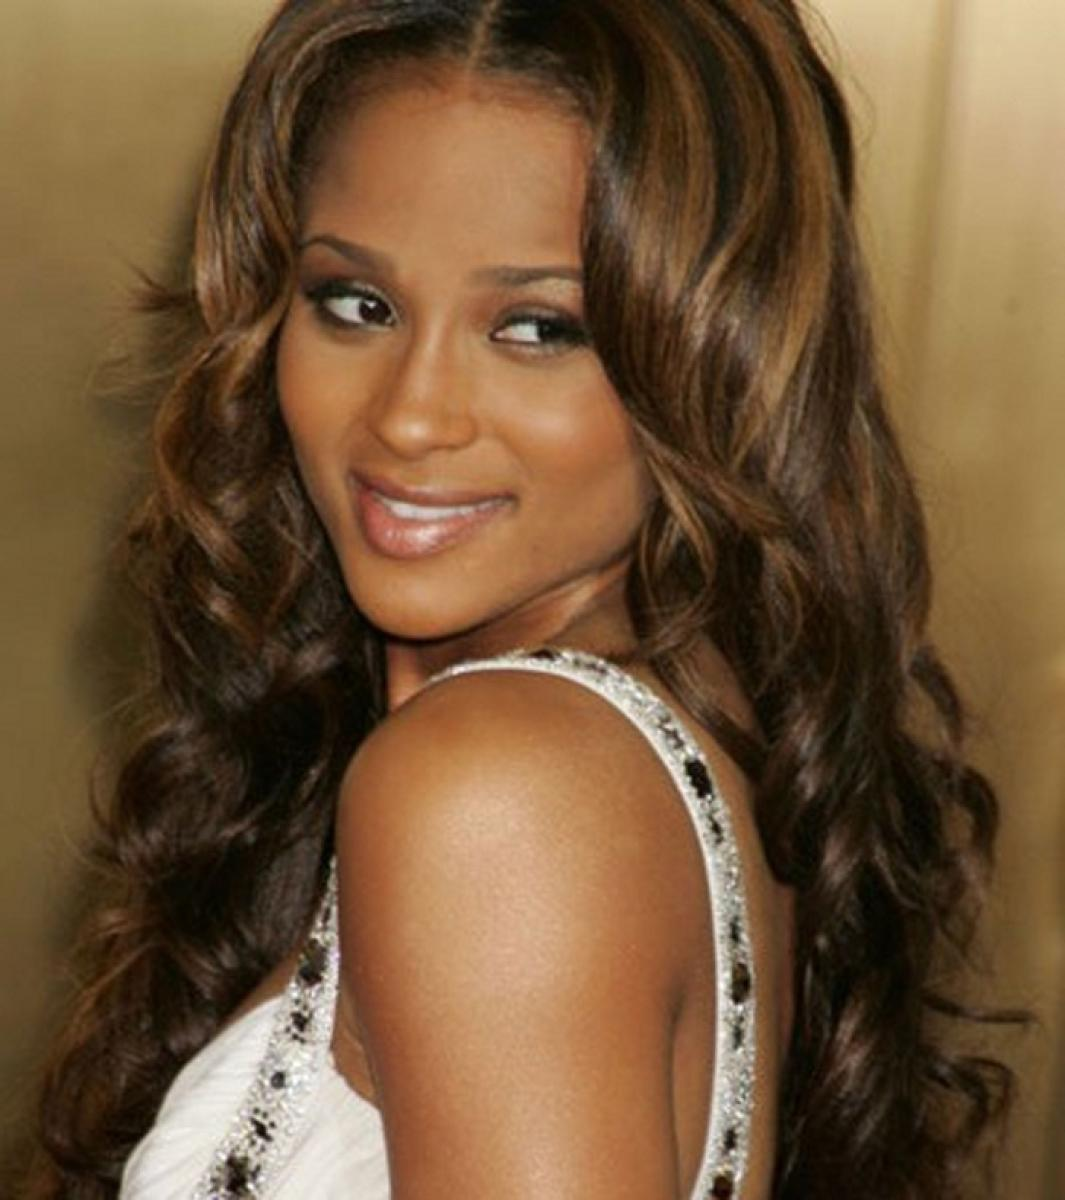 Pictures of Wavy Curly Weave Hairstyles for Black Women